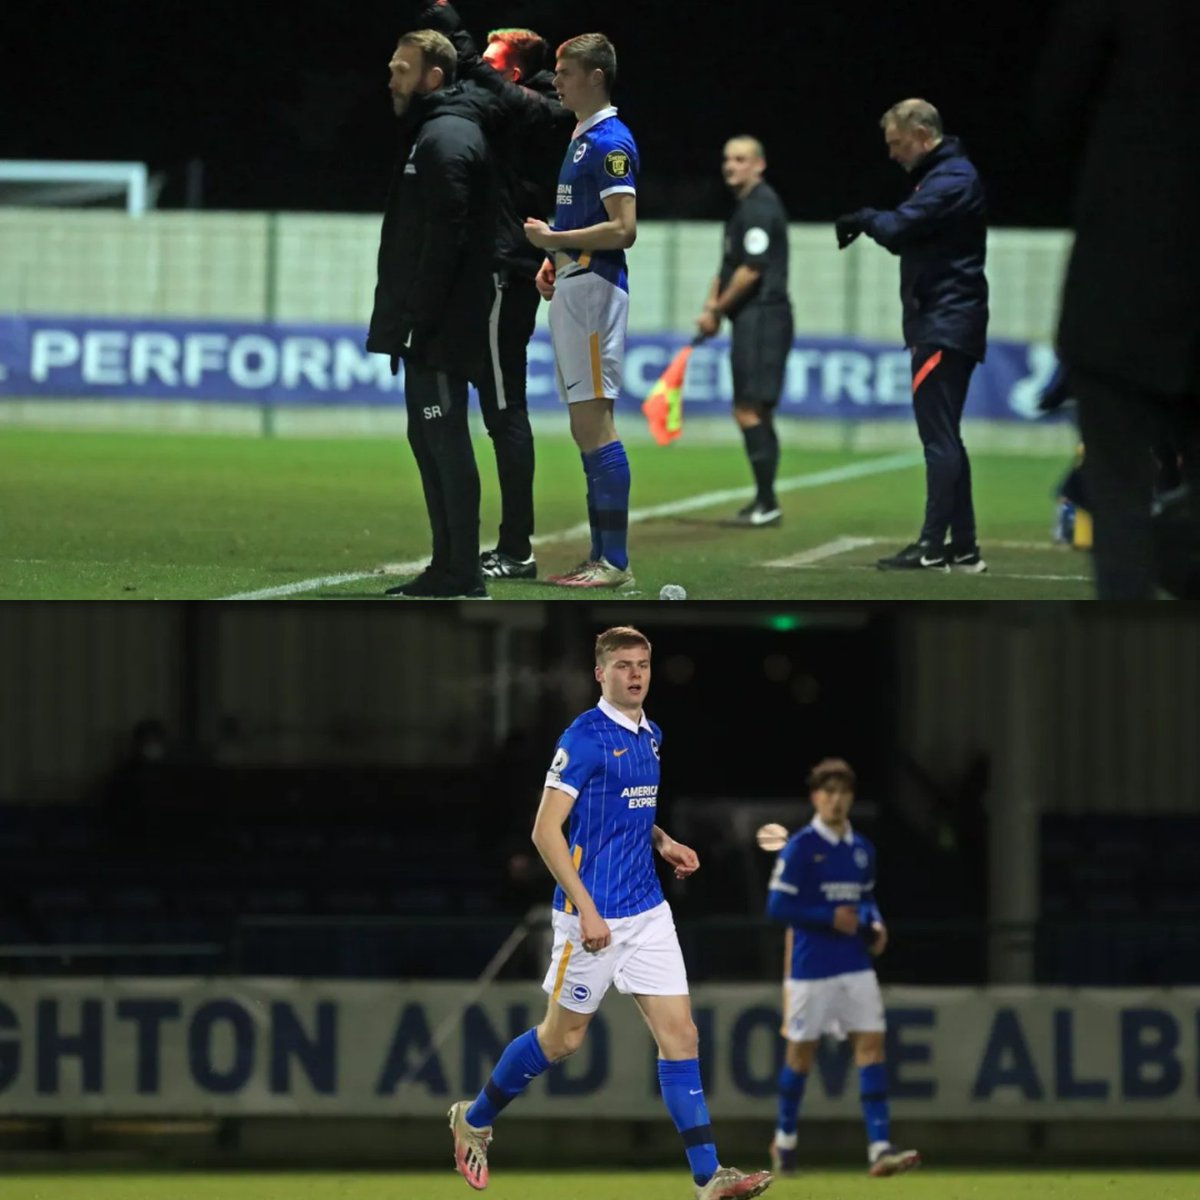 This is 16-year-old @Evan_Ferguson9 coming on for Brighton's U23s tonight against Spurs 6 days after he joined the club from Bohemians/SKB. Should be the start of something really special for the lad and another genuine reason to be hopeful for the future. ☘️ #coybig